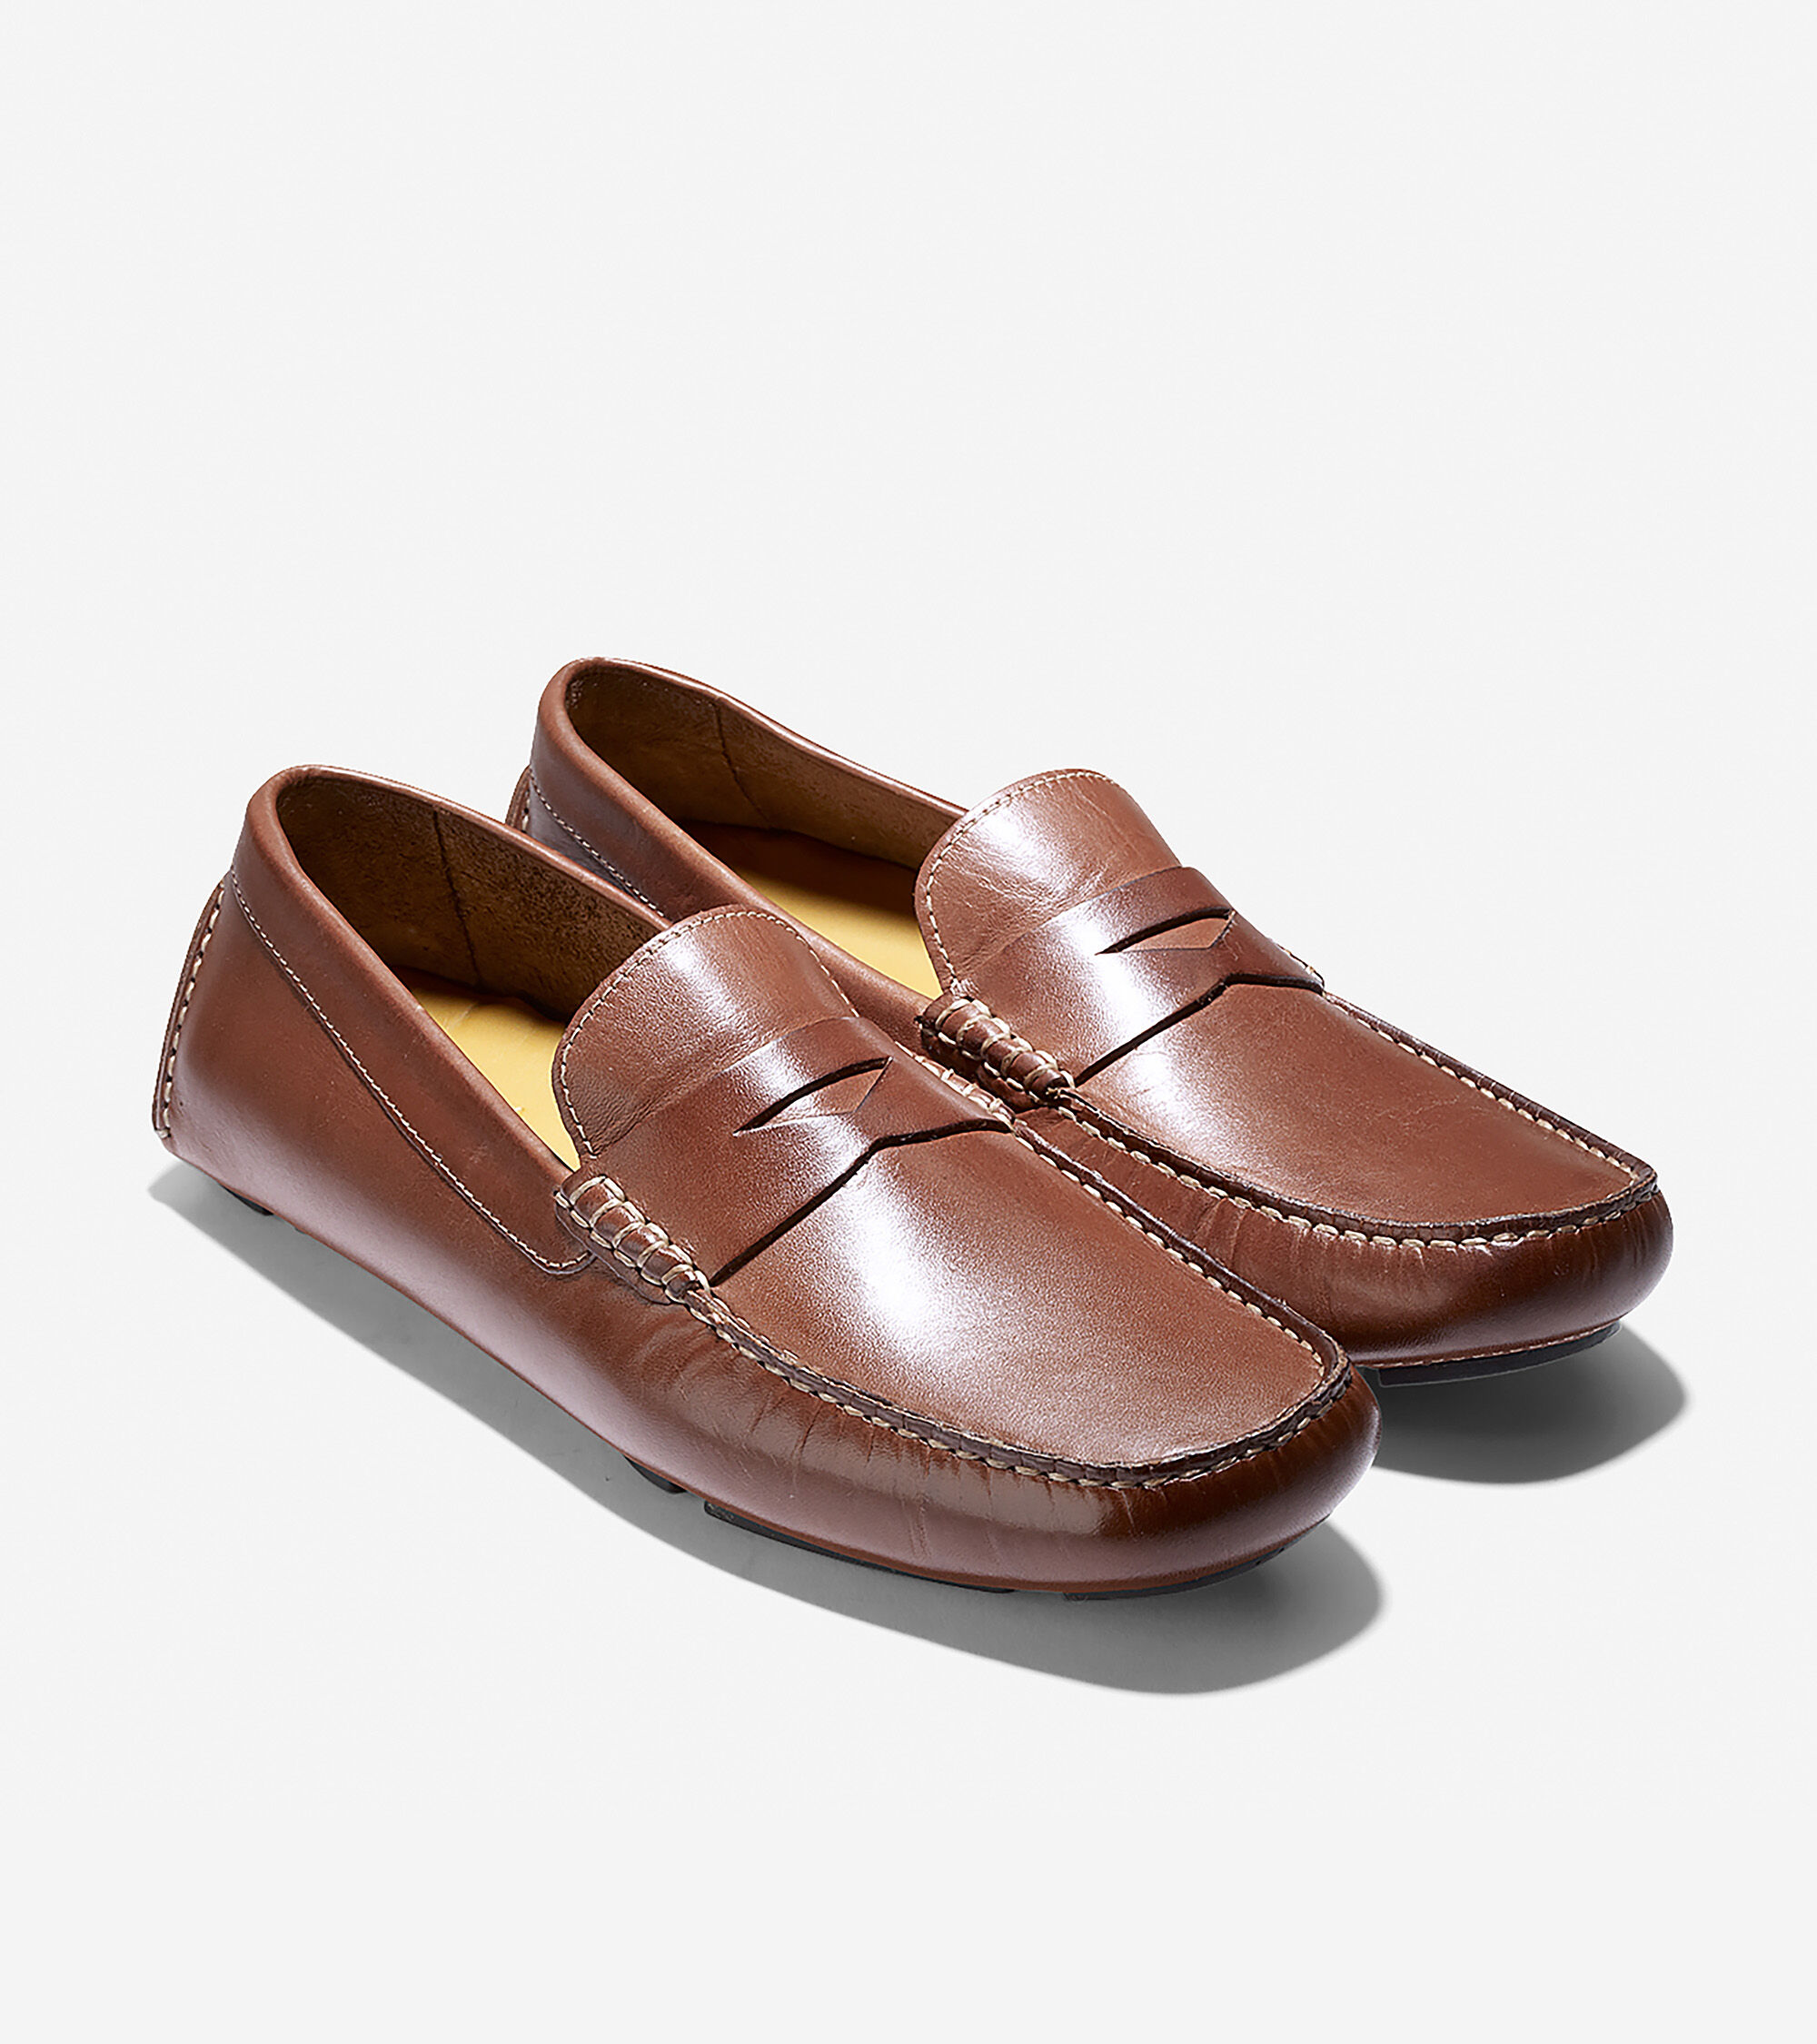 9d05d02282c ... Howland Penny Loafer  Howland Penny Loafer.  COLEHAAN